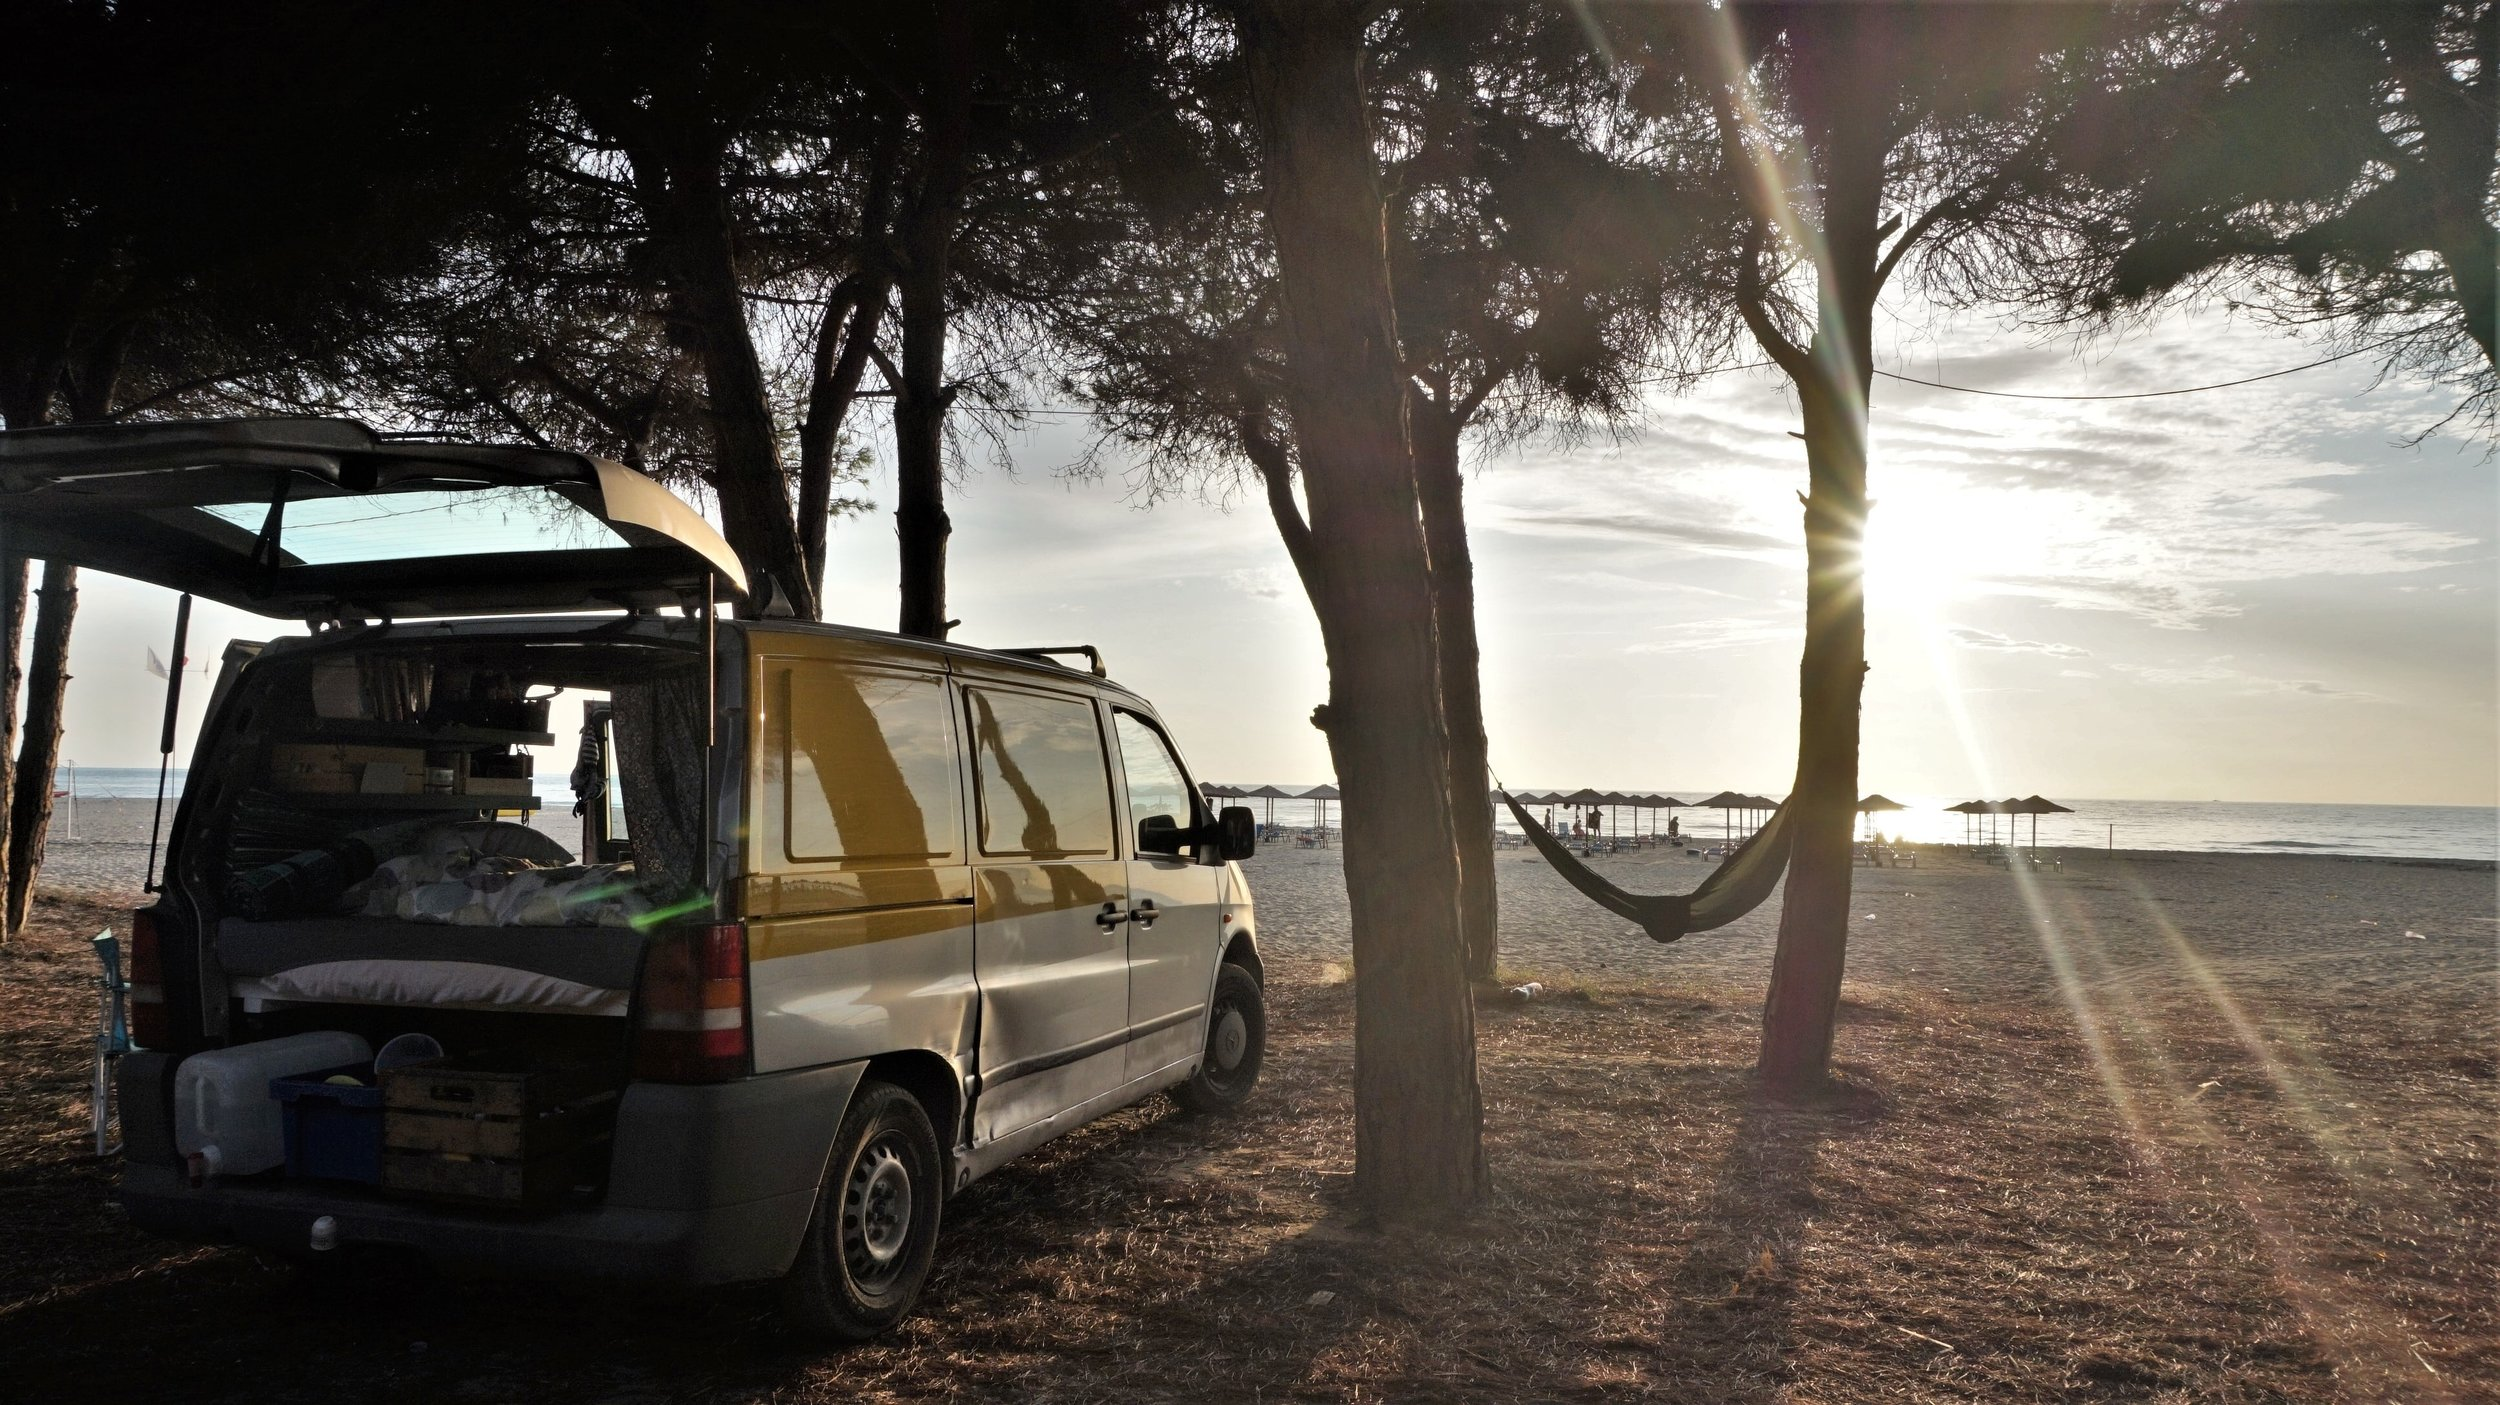 wild camping on the beach in albania best things to do in albania